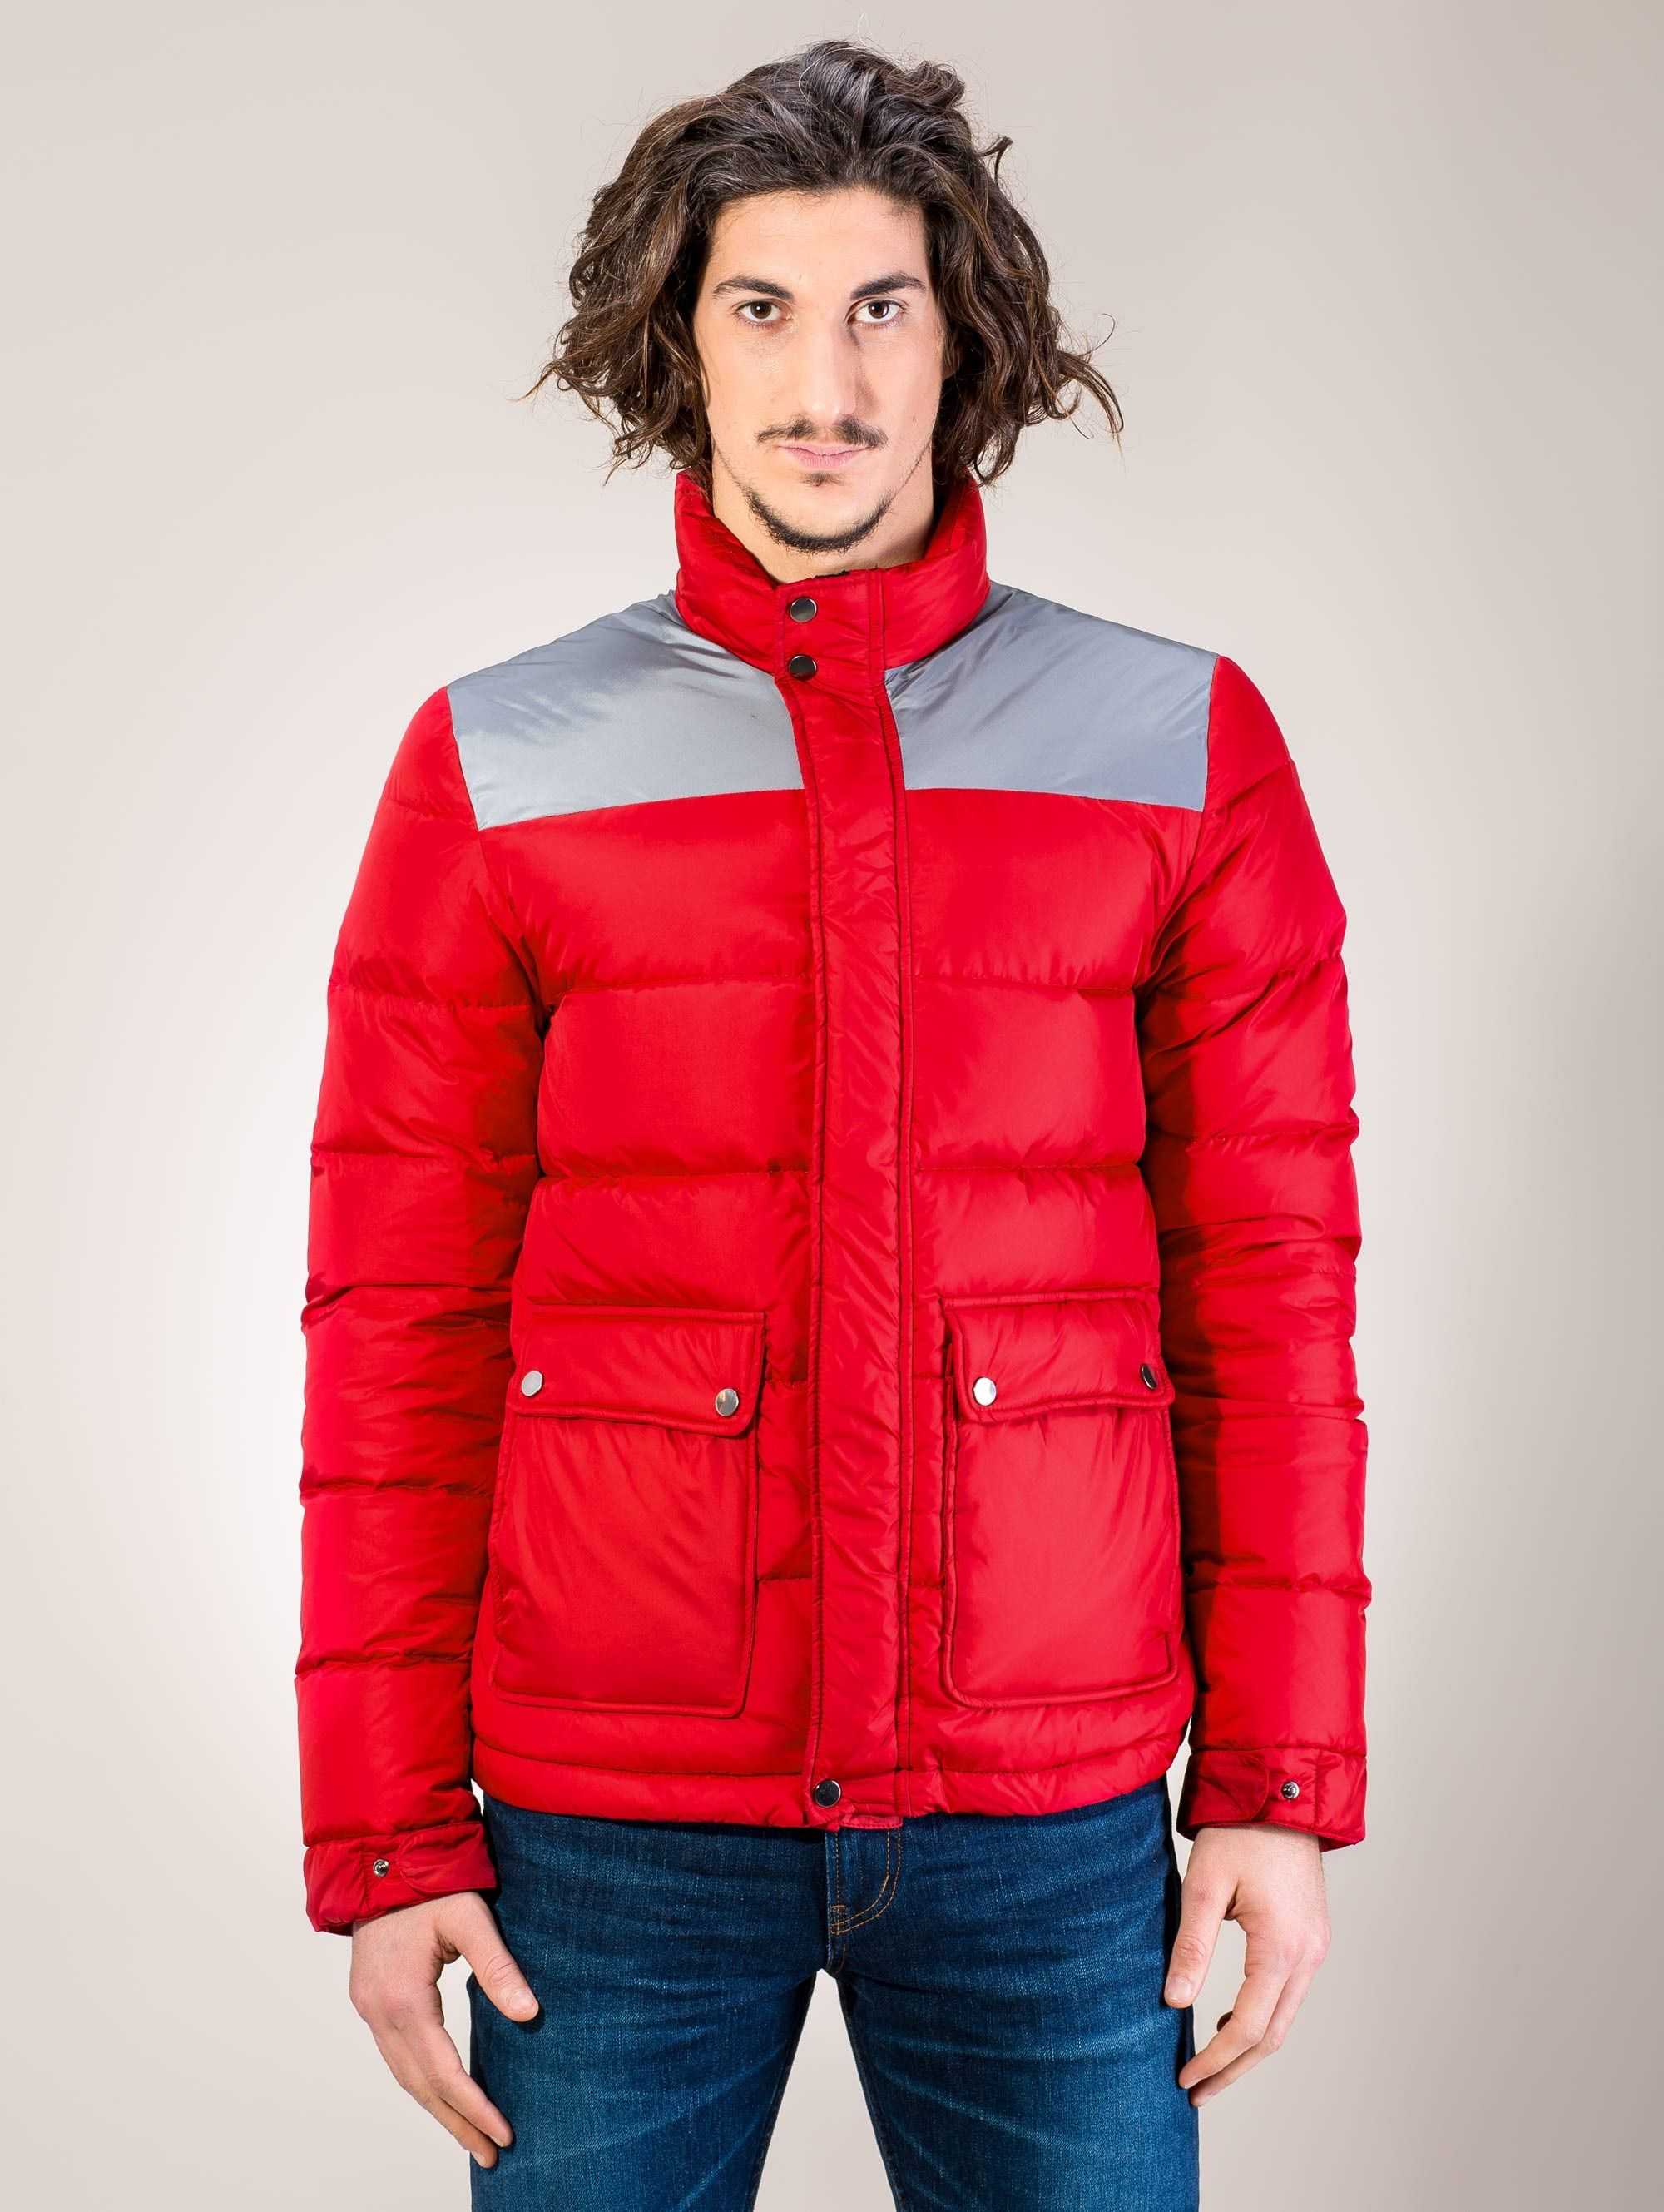 404 Not Found Down Jacket Mens Outerwear Jackets [ 2658 x 2000 Pixel ]